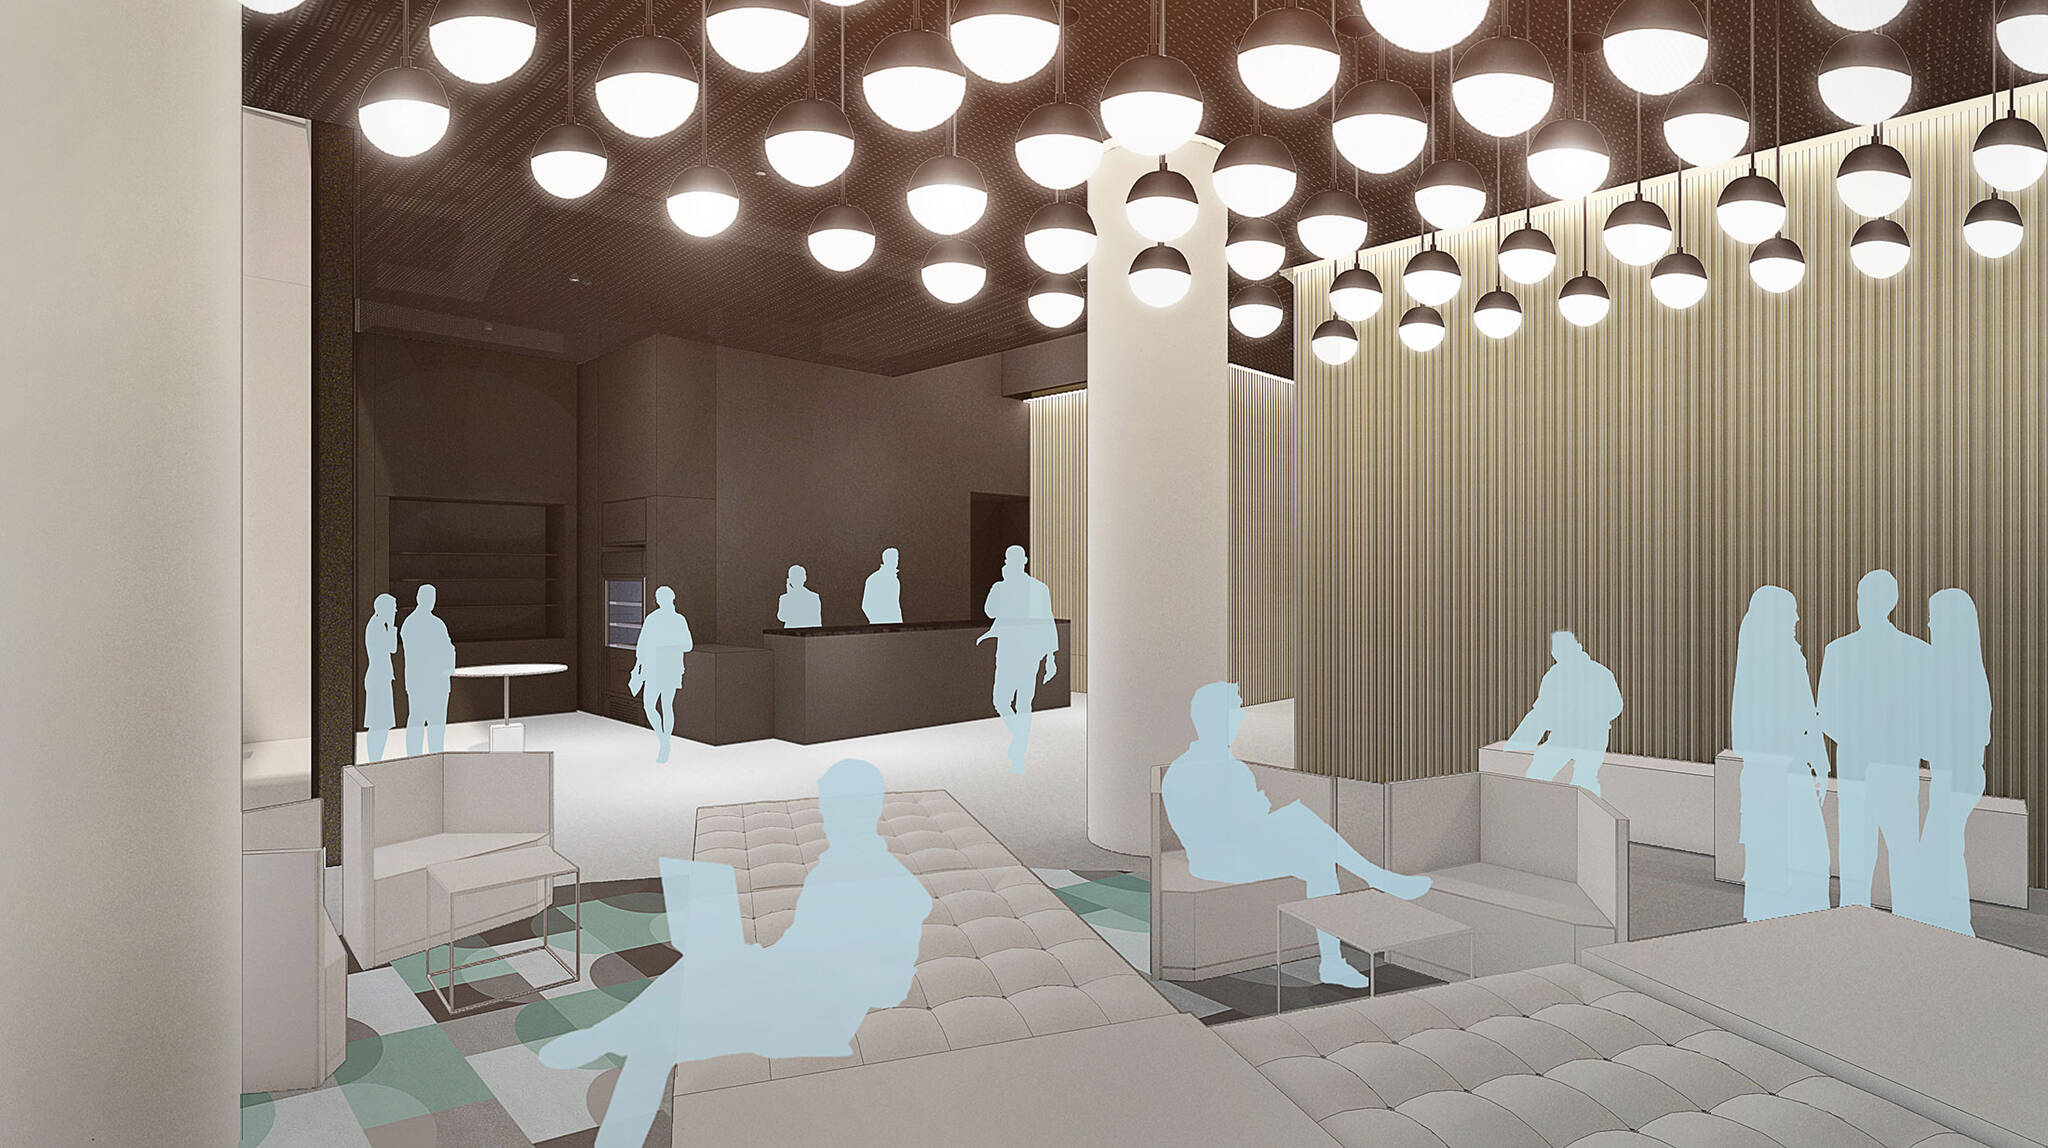 Interior walkthrough of the Modular AC Hotel project located at 842 Sixth Avenue in NoMad, New York City designed by the architecture studio Danny Forster & Architecture